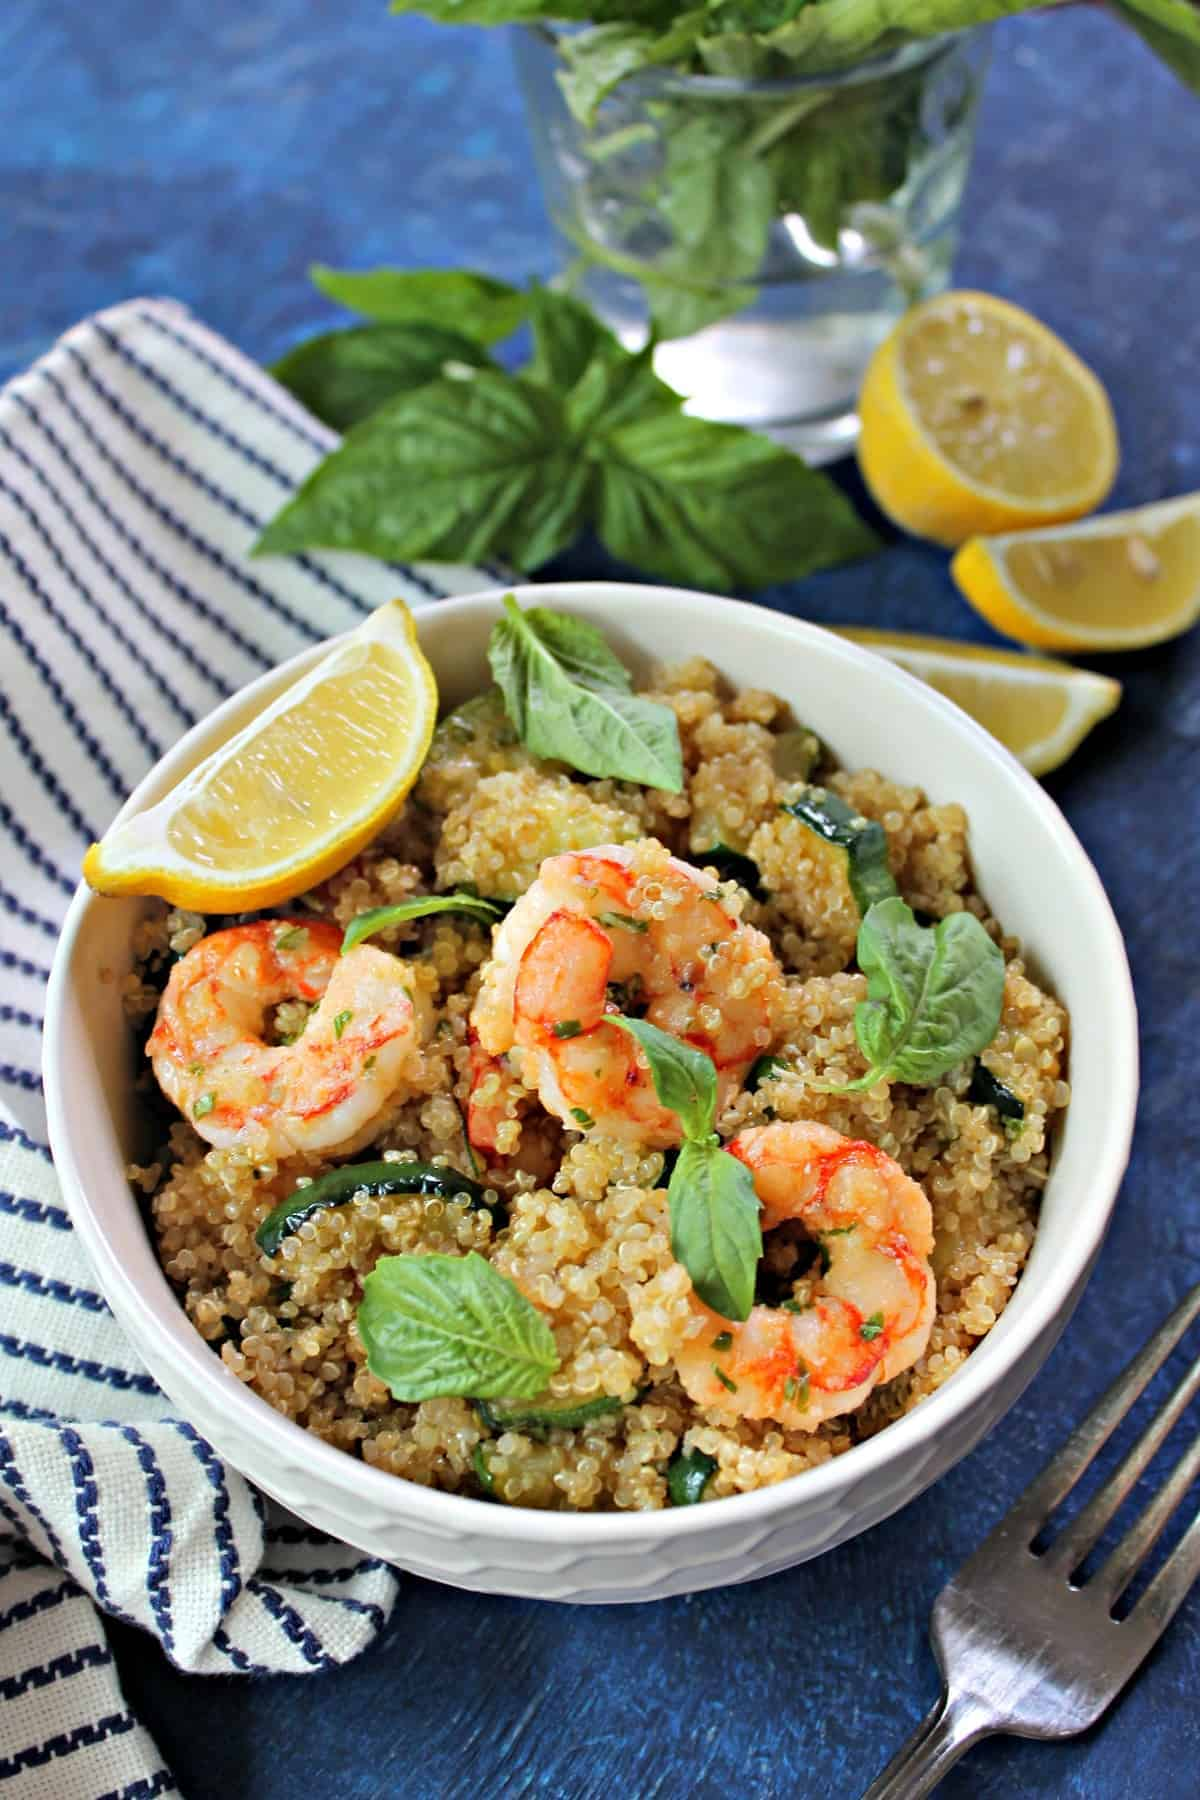 Lemon Basil Shrimp & Quinoa is a light and refreshing meal that's perfect for lunch or dinner